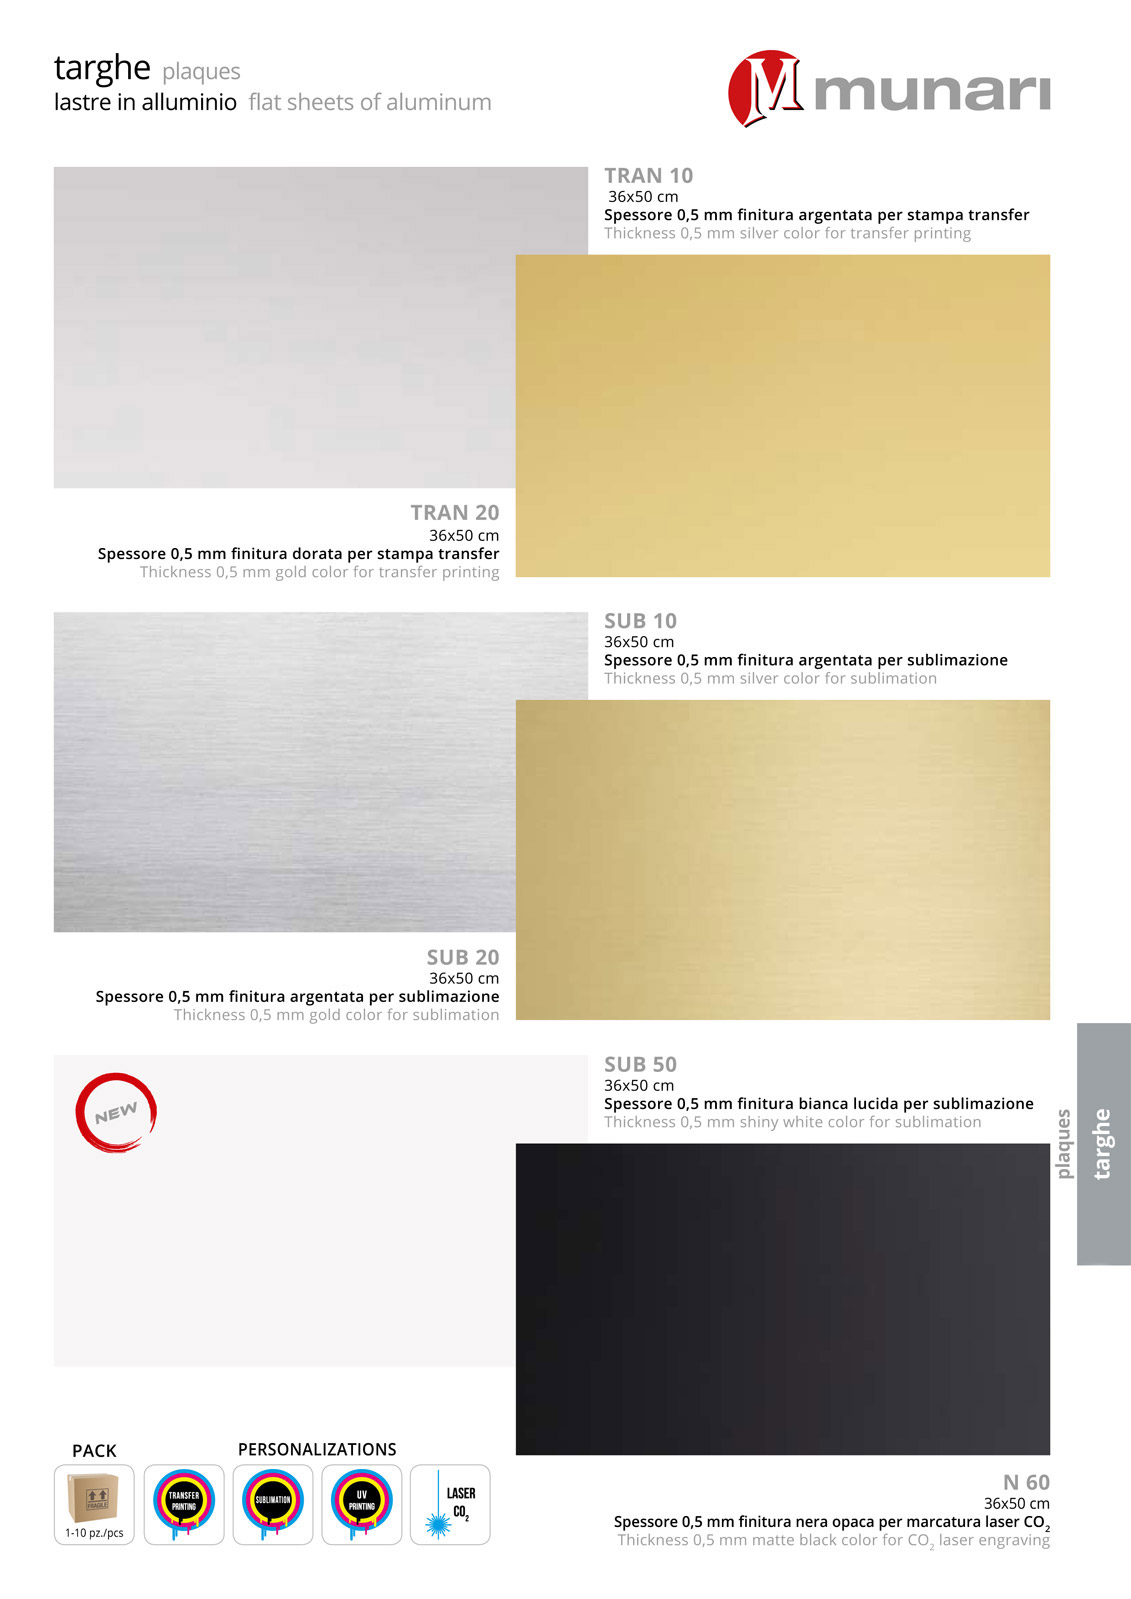 Aluminum sheets for sublimation or transfer printing series SUB 50